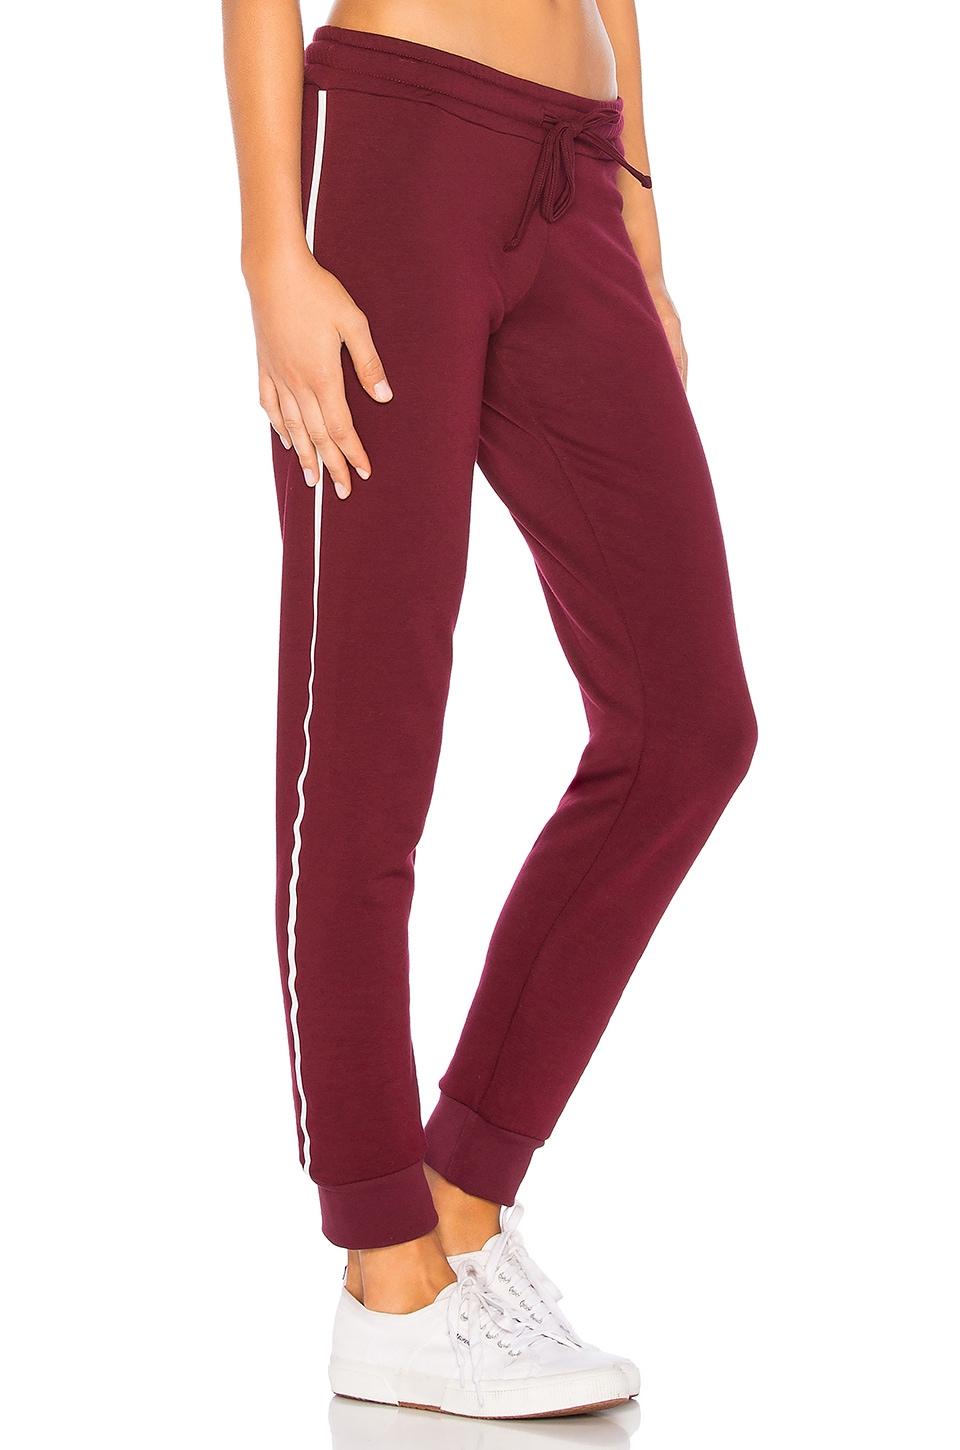 Price Sweatpant